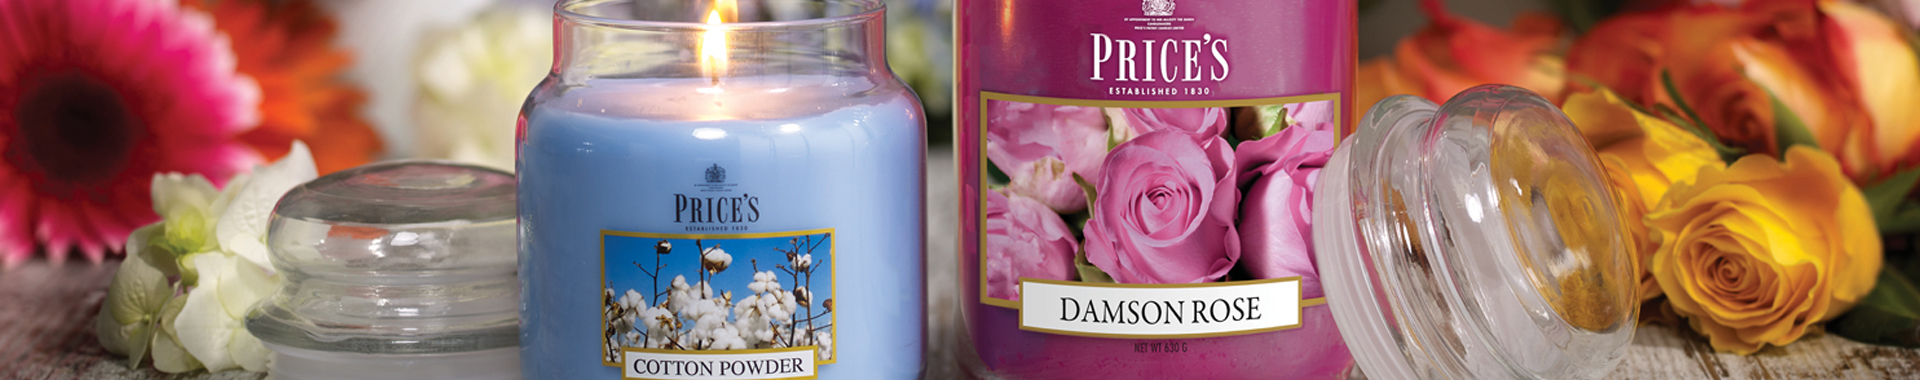 homepage_banner_fragrance_1920x380